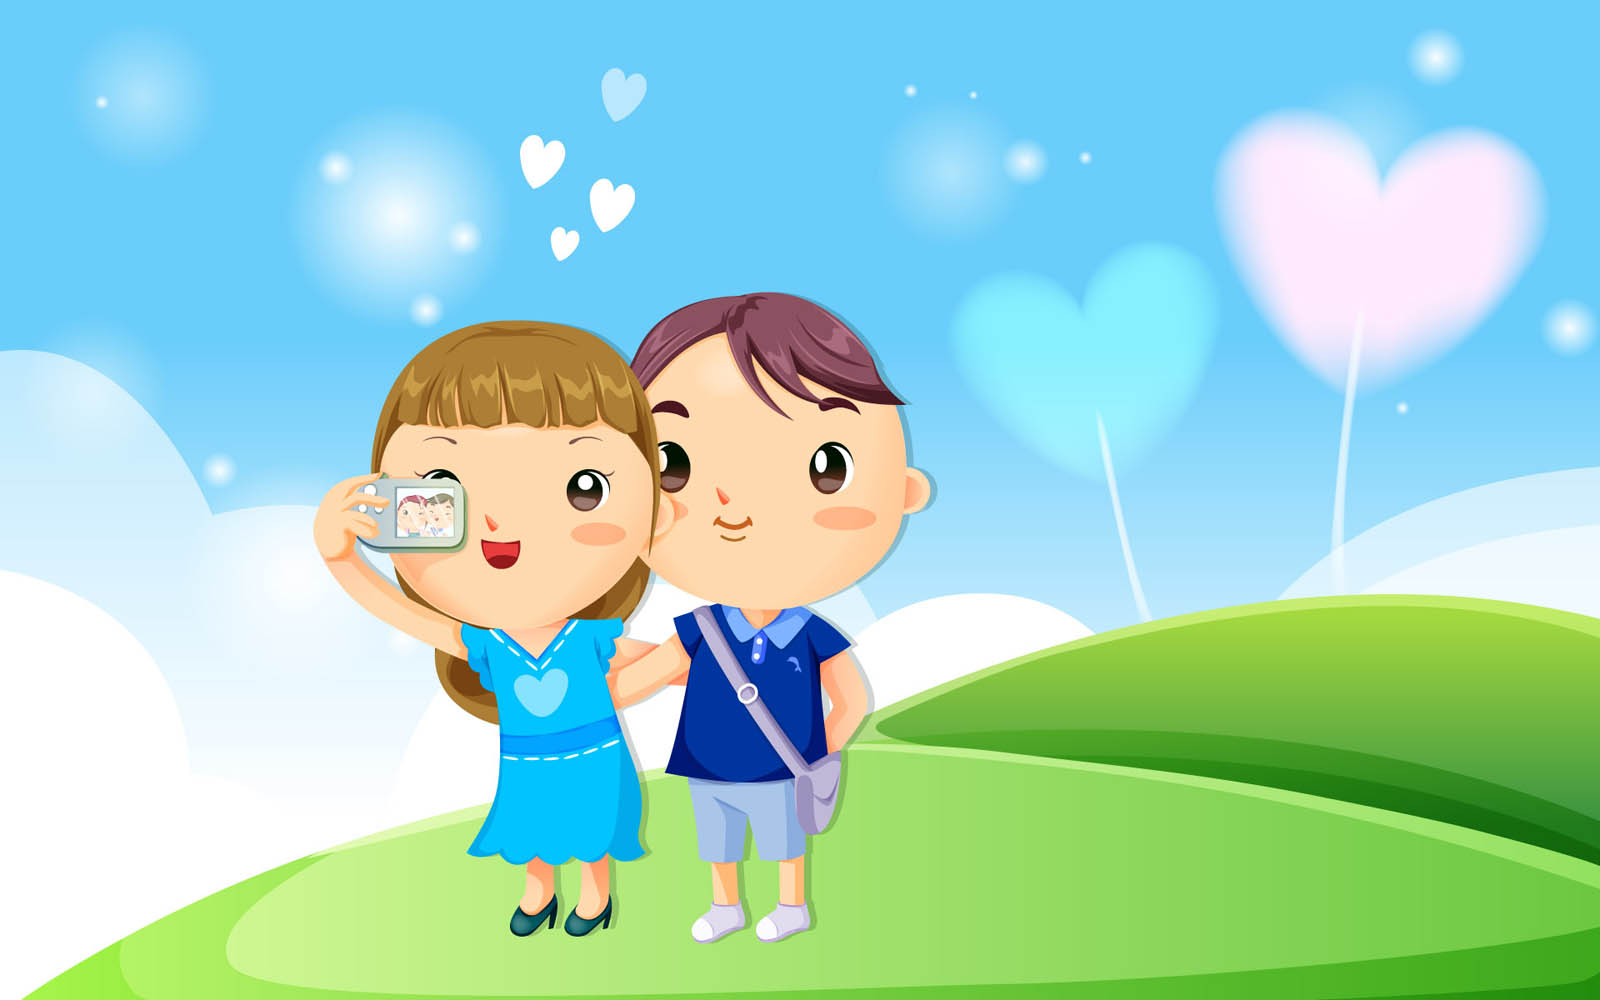 Wallpaper cartoon Love Hurts : wallpapers: cartoon Love Wallpapers